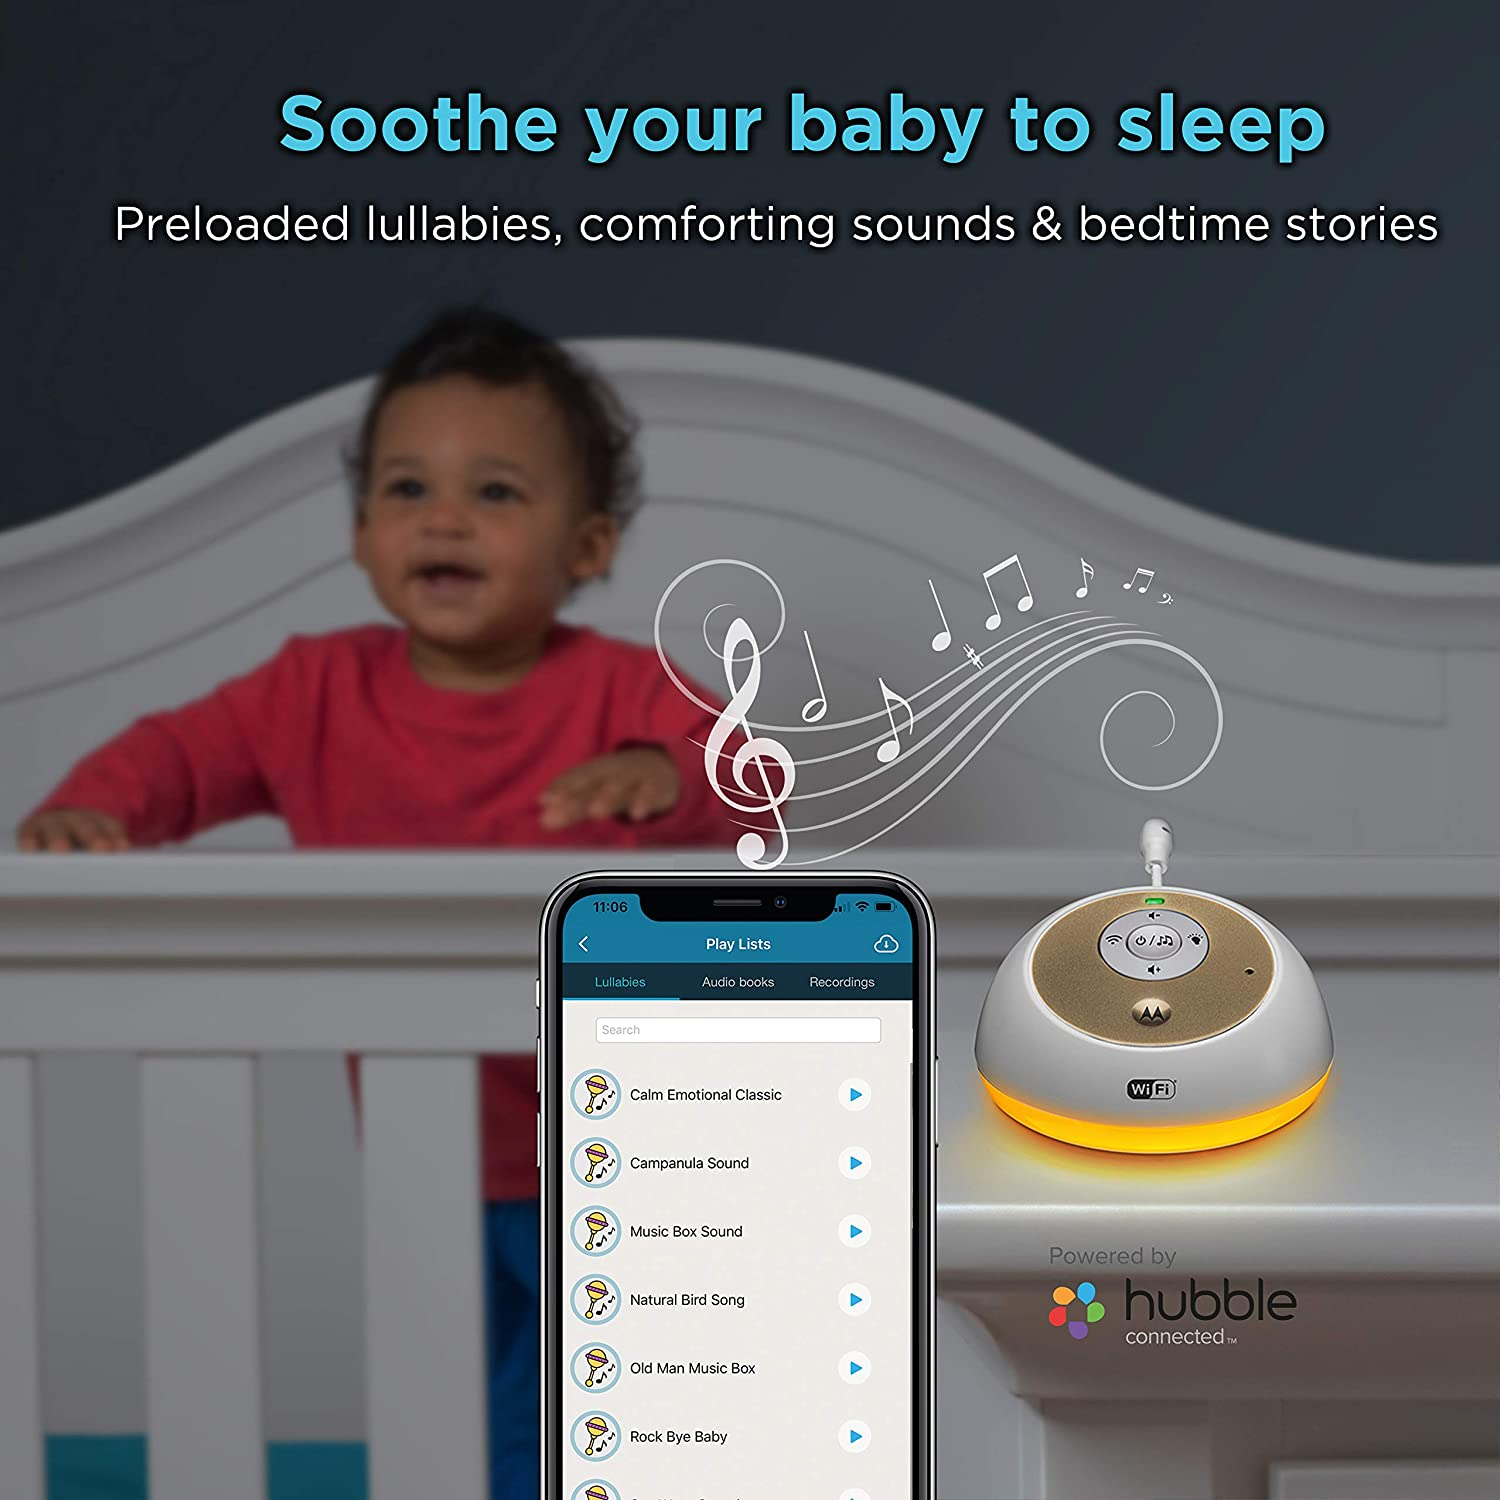 Motorola MBP163CONNECT Audio Baby Monitor Audiobook Lullaby 7 Night Light Color Options Wireless WiFi Smart Device for Toddlers with 10 Soothing Sounds 2-Way Talk Intercom Nursery Infants